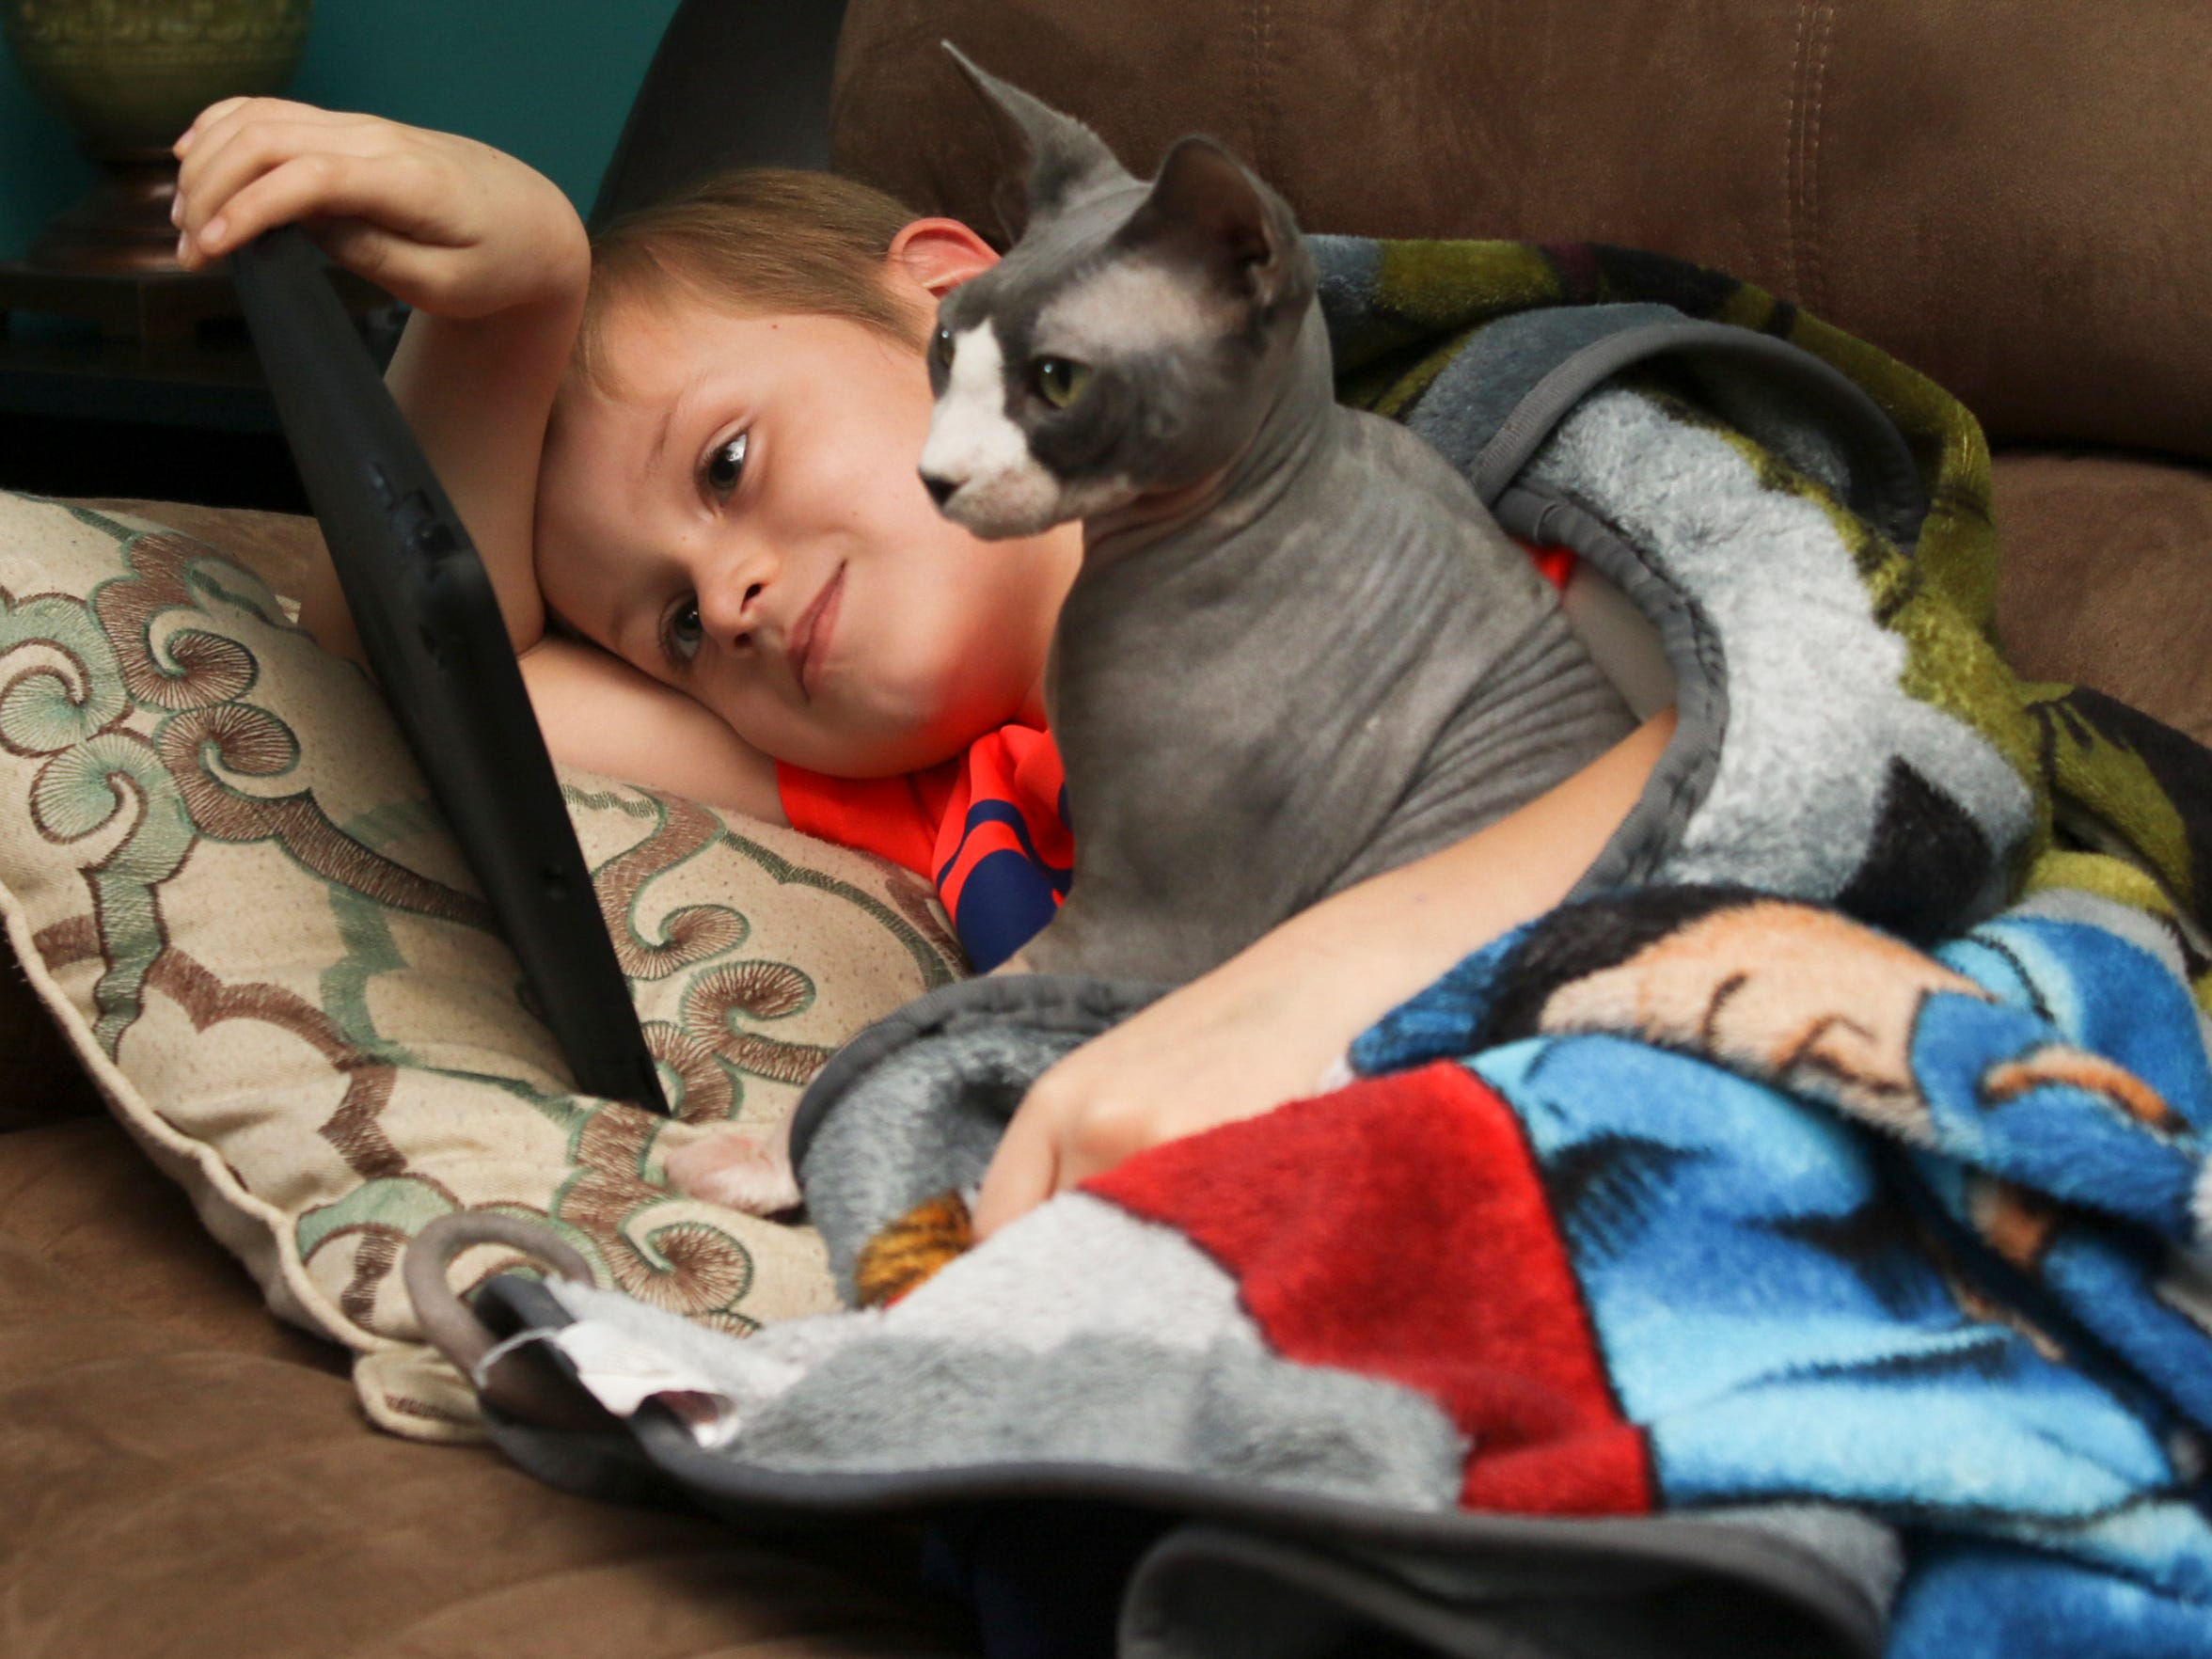 Noah Coffman, 6, watches a video on his iPad with his